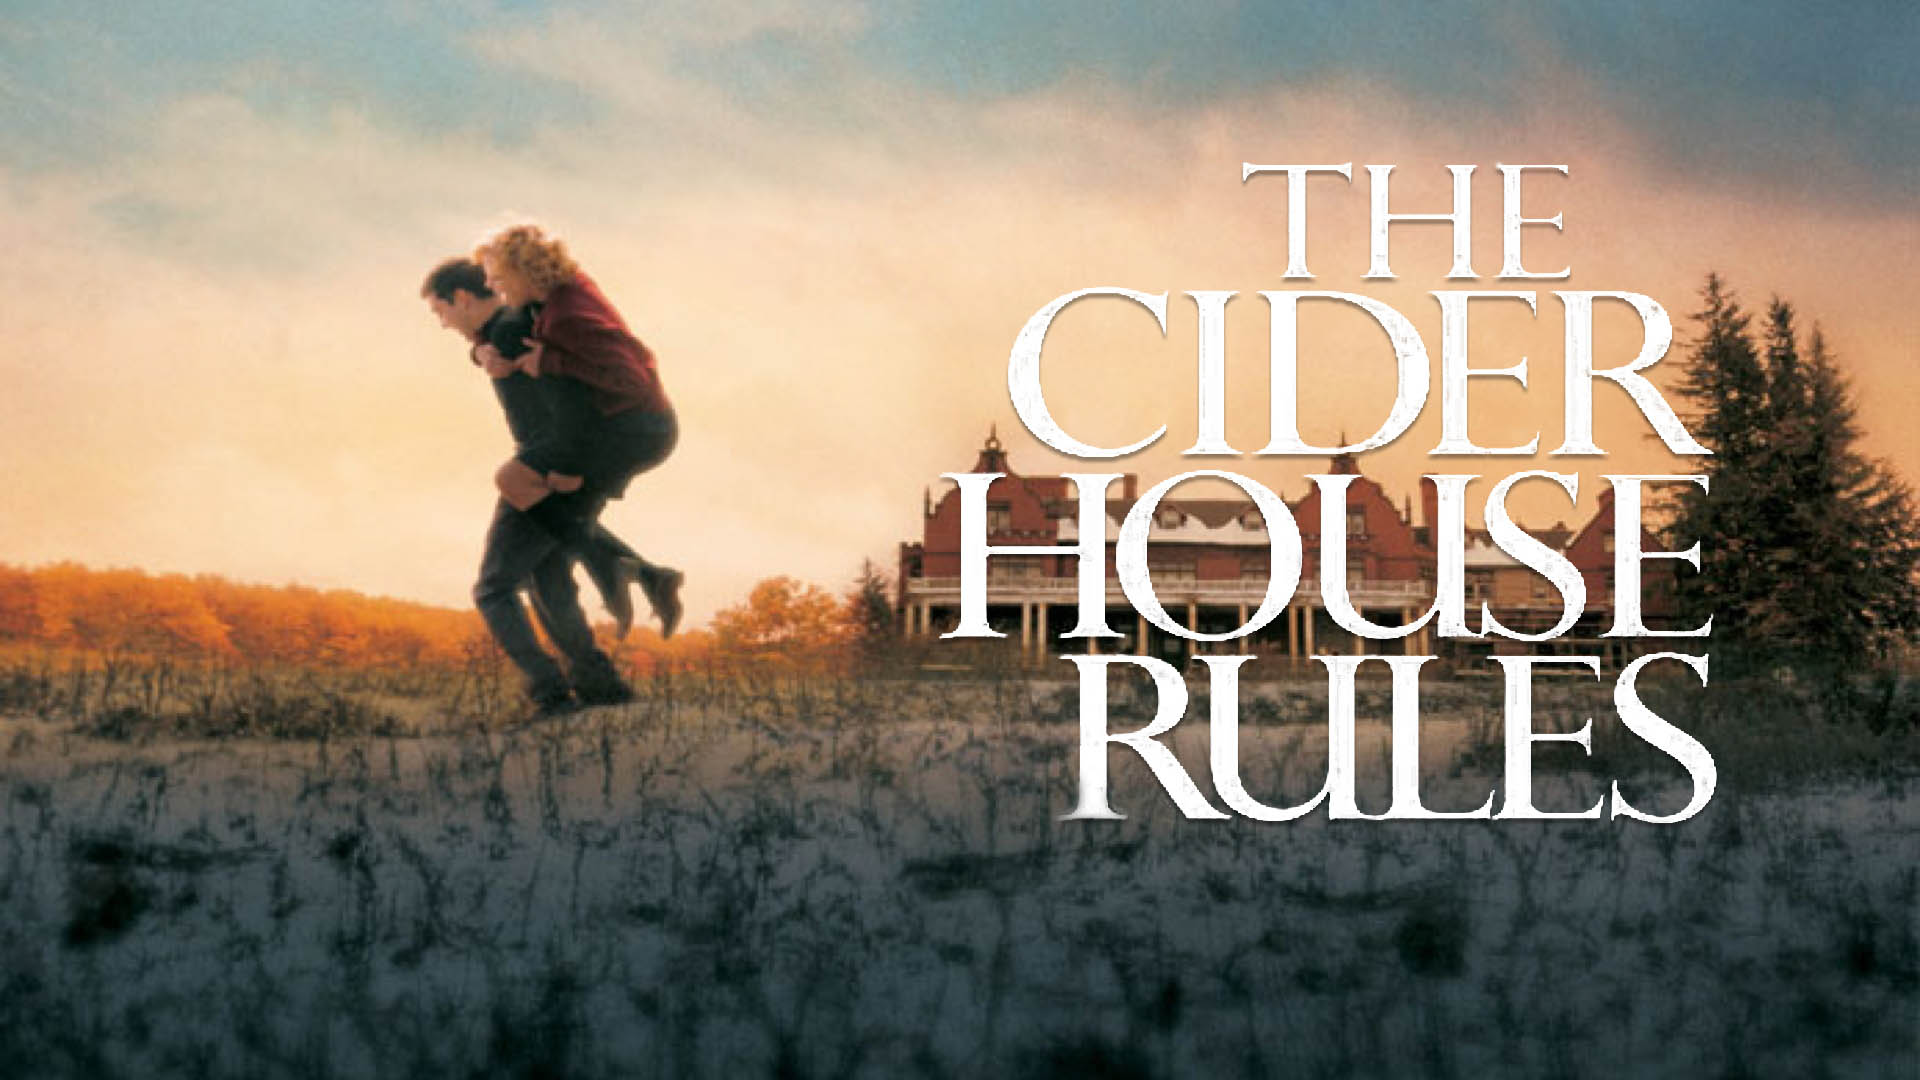 The Cider House Rules